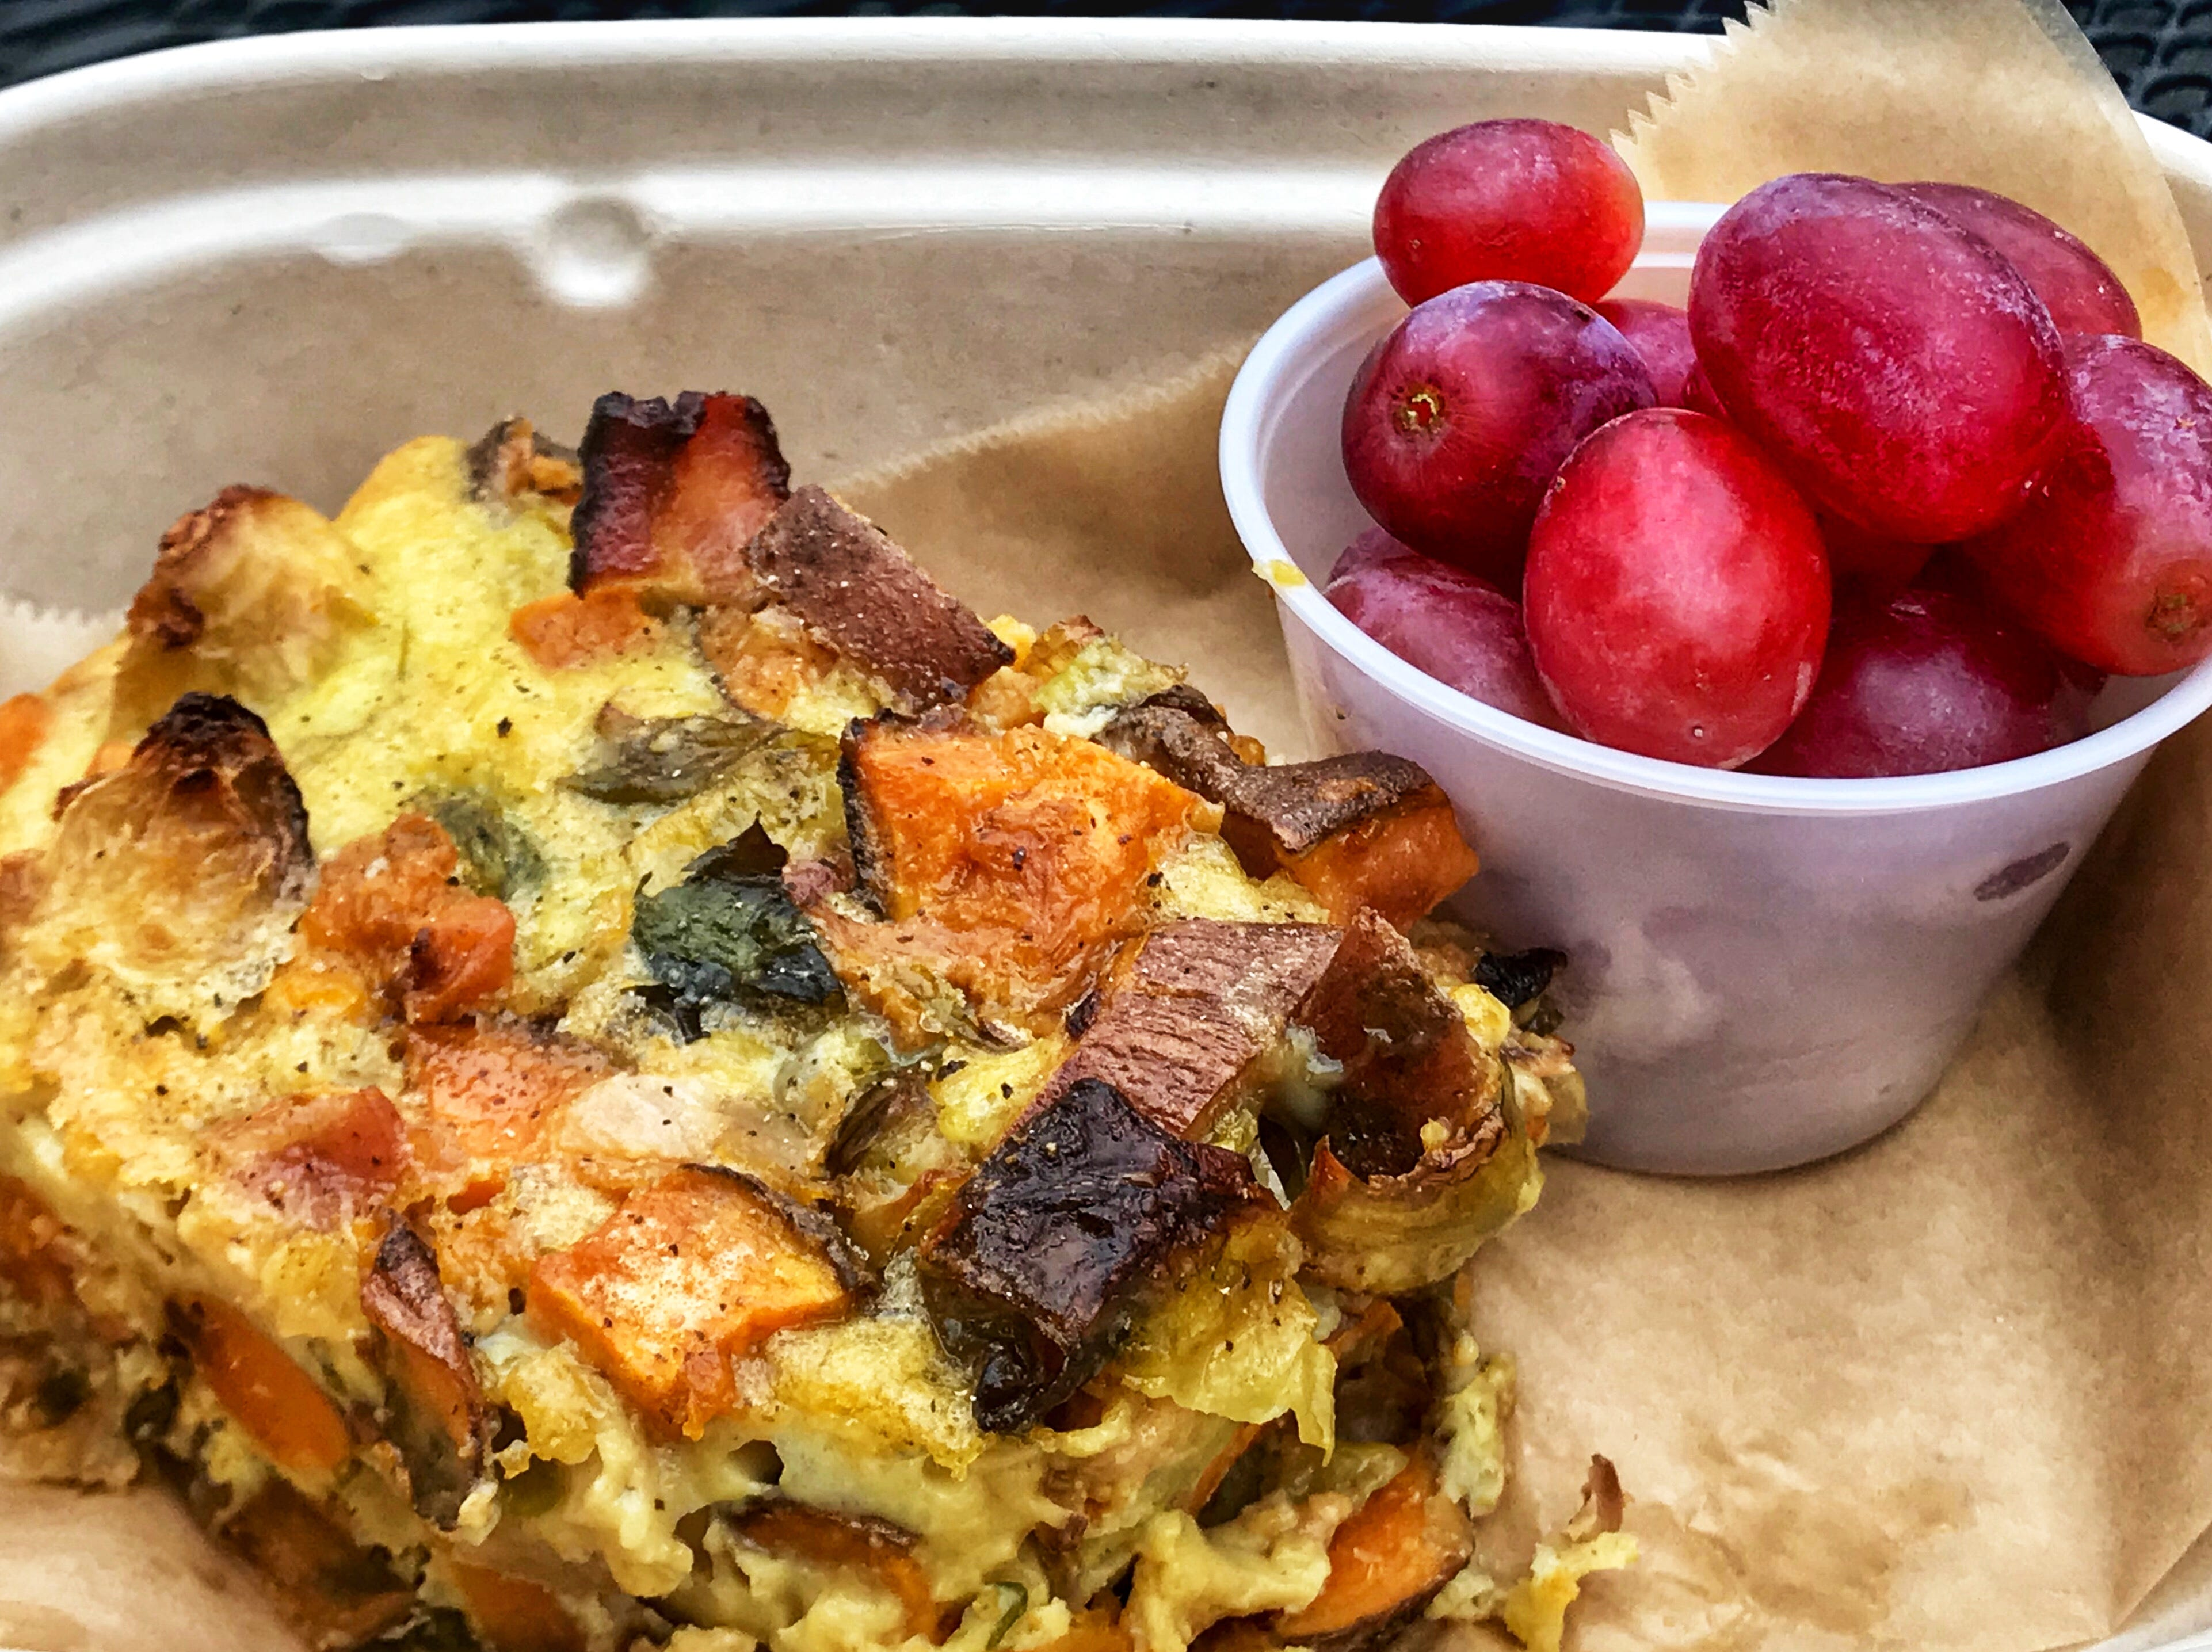 Fittest Kitchen has launched a meal prep service, which includes menu items like the breakfast casserole.